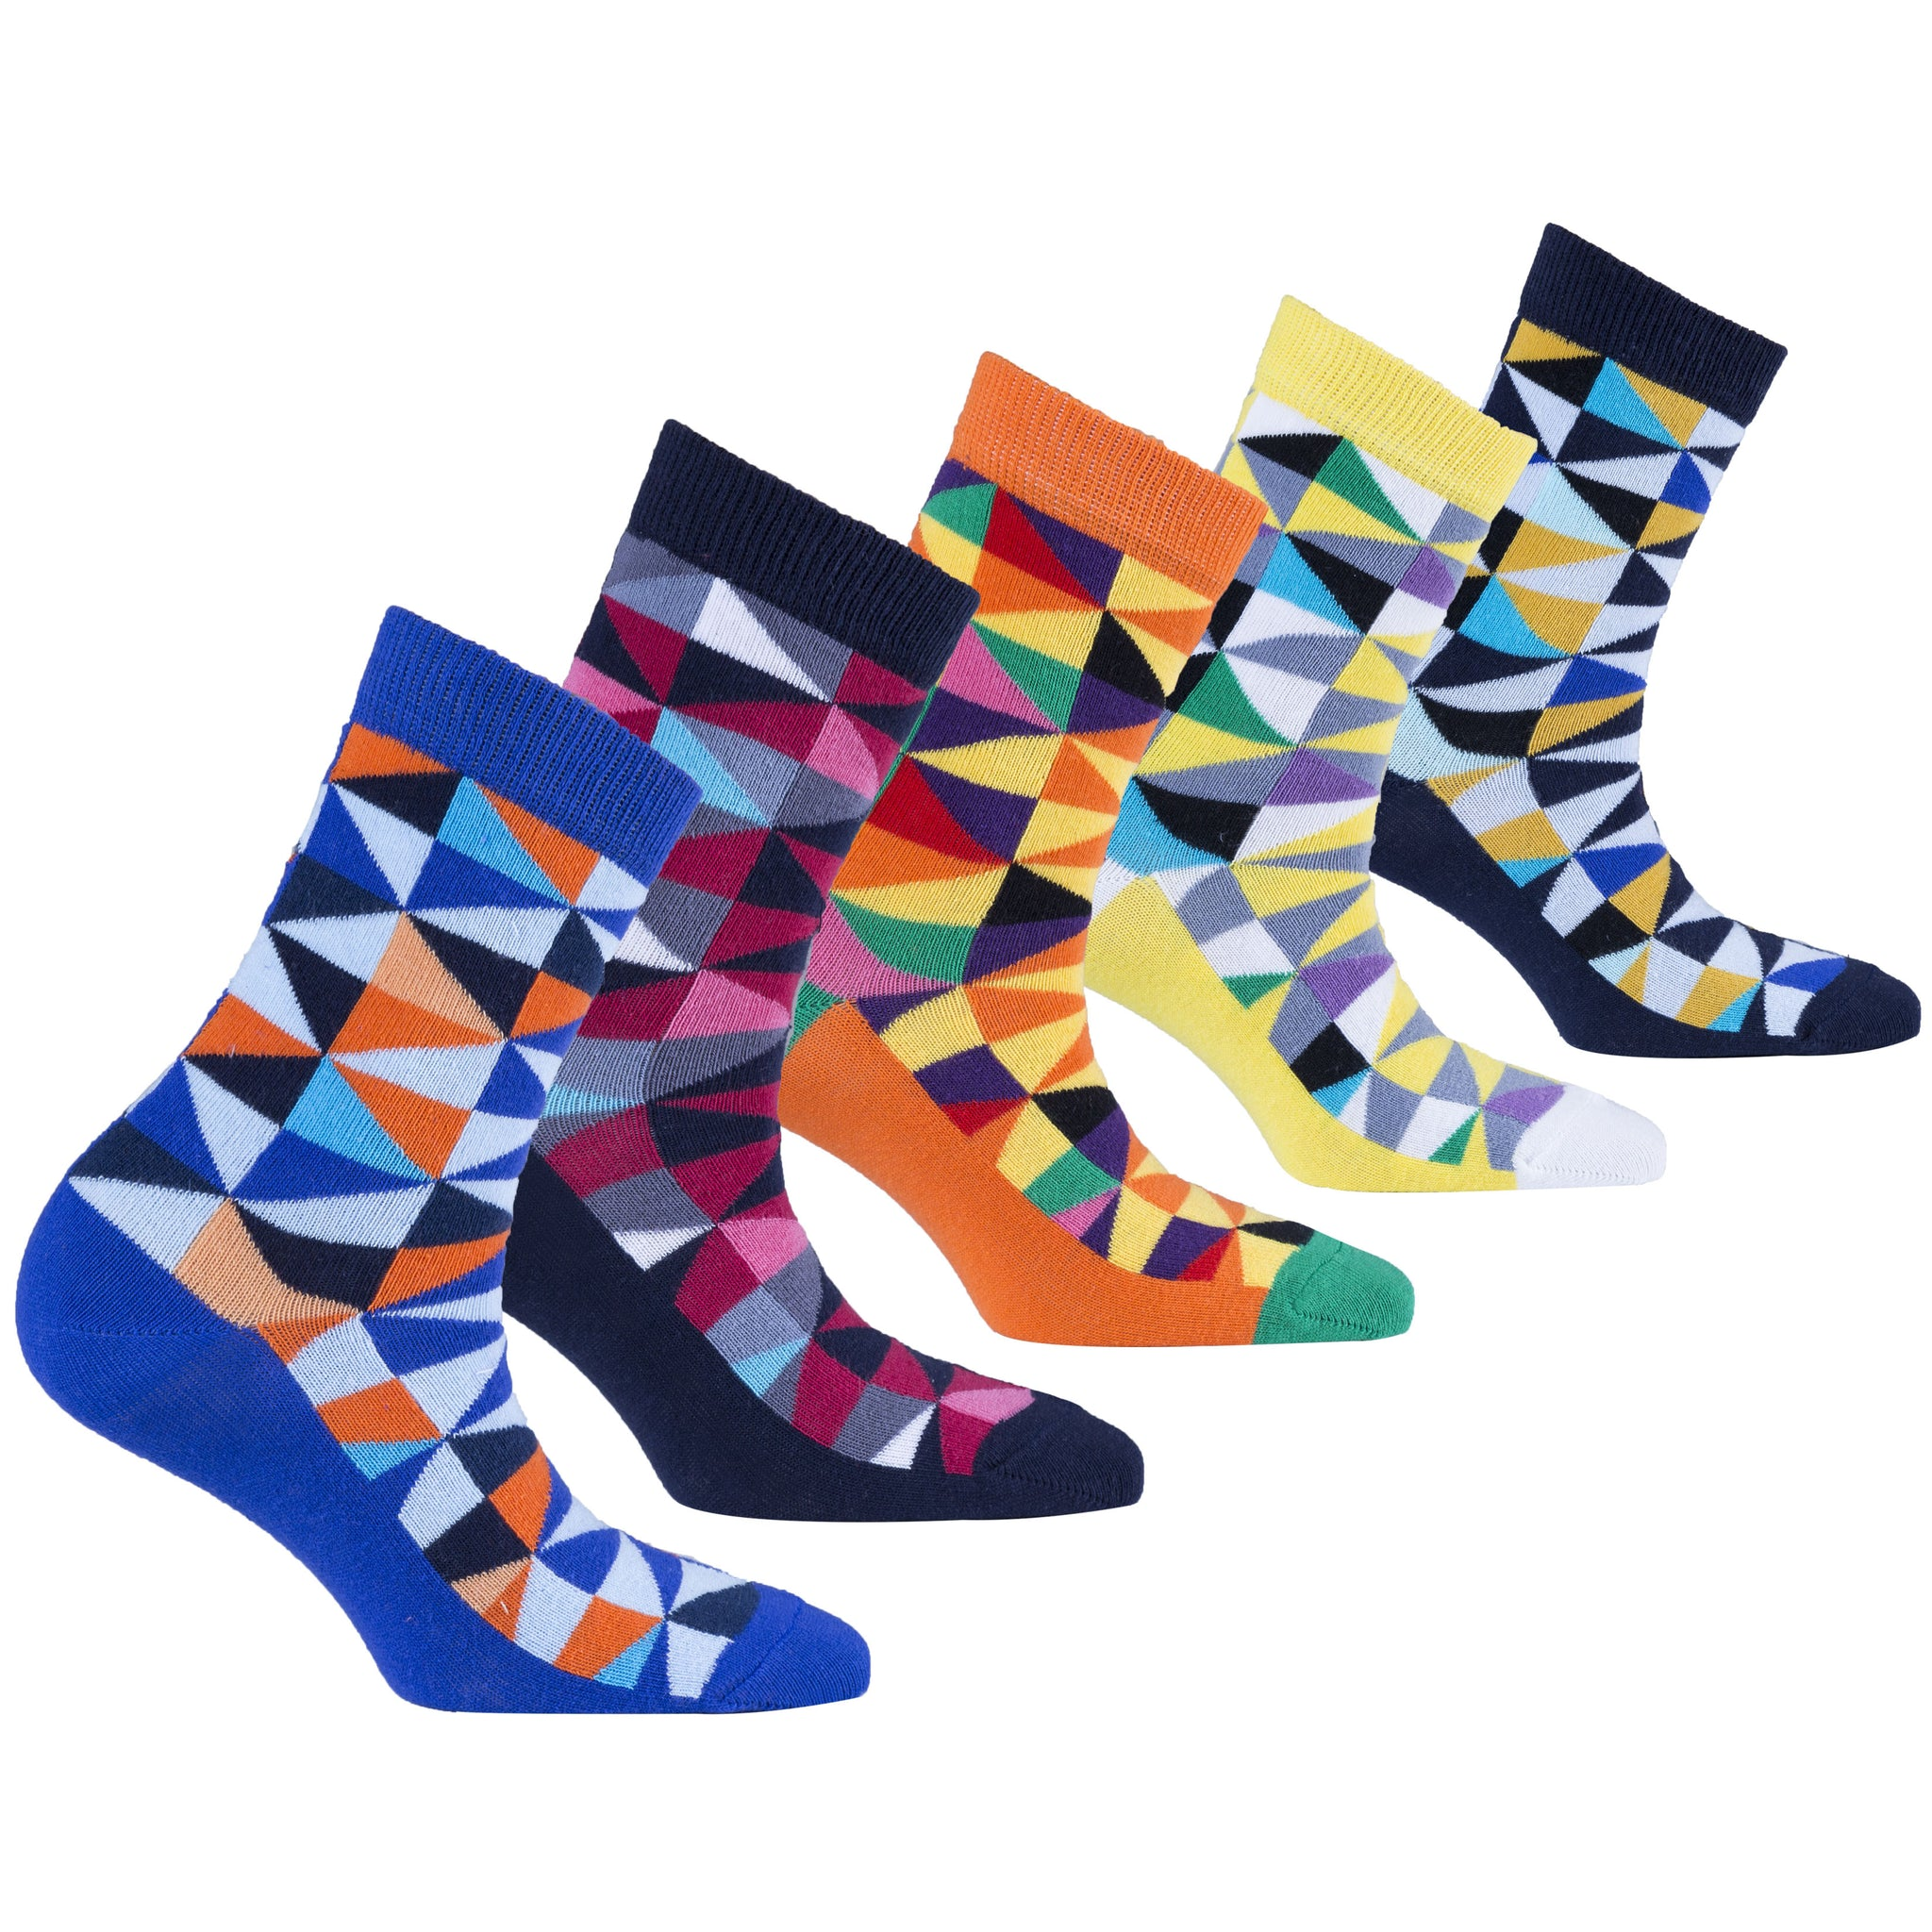 Kids Stylish Triangle Socks